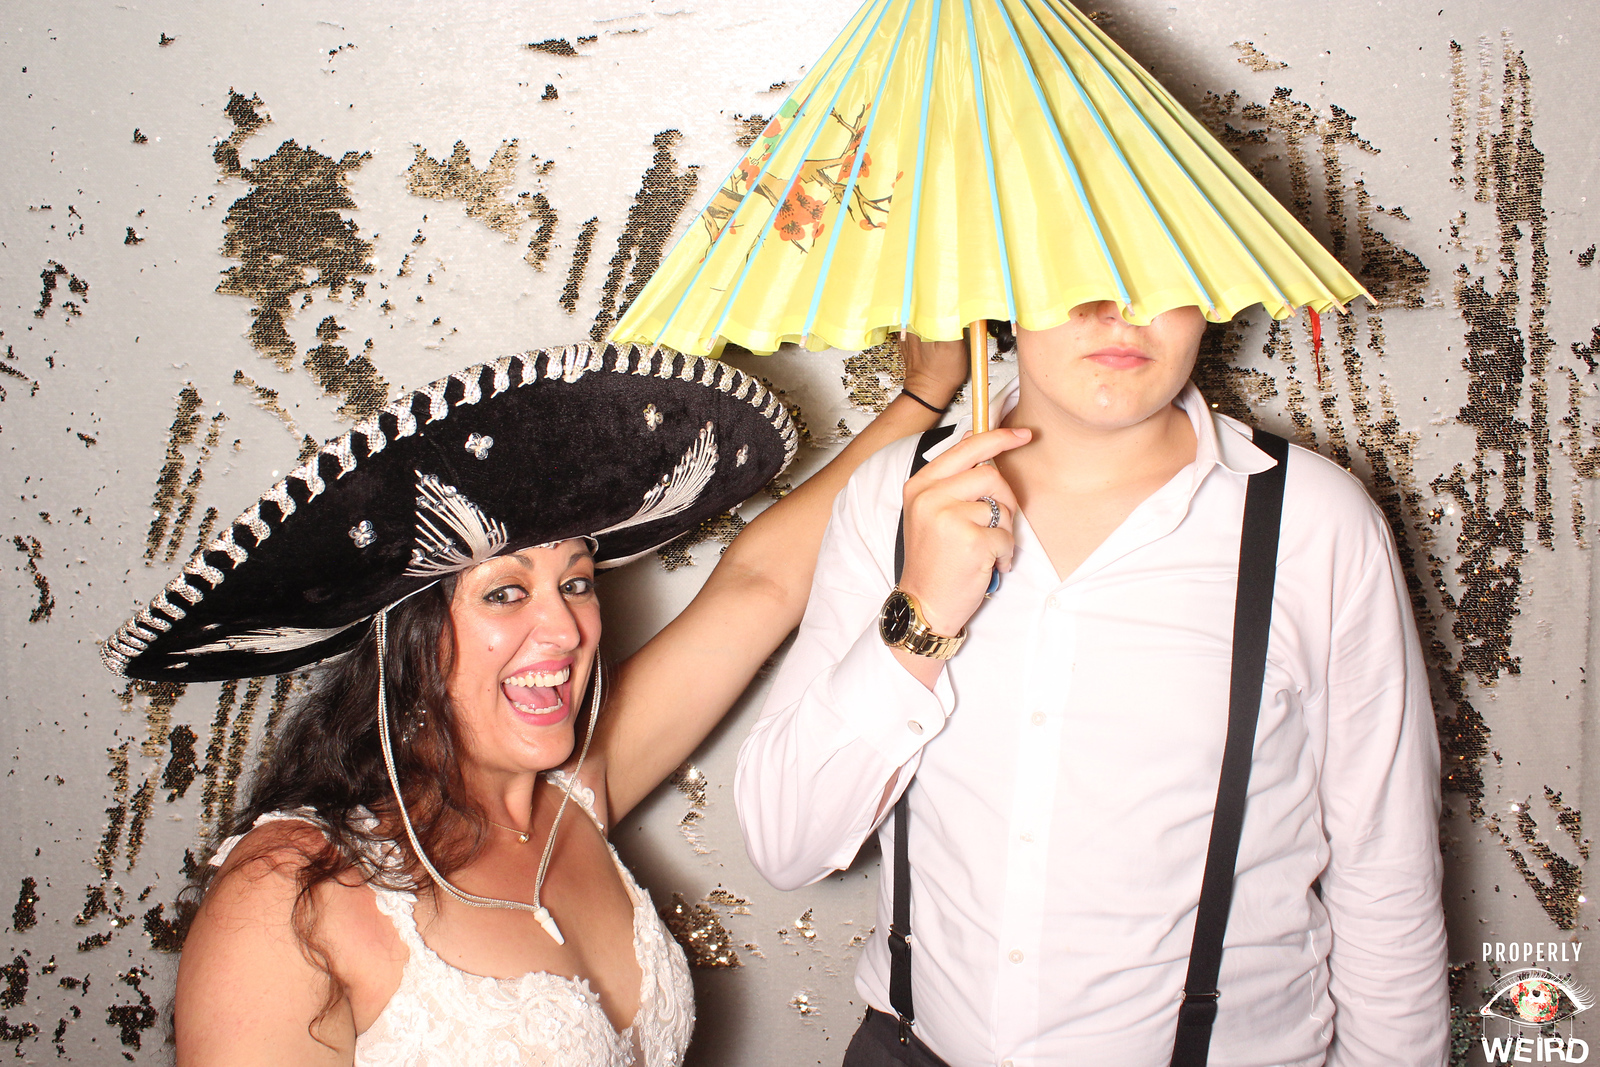 Bride in Properly Weird Photo Booth